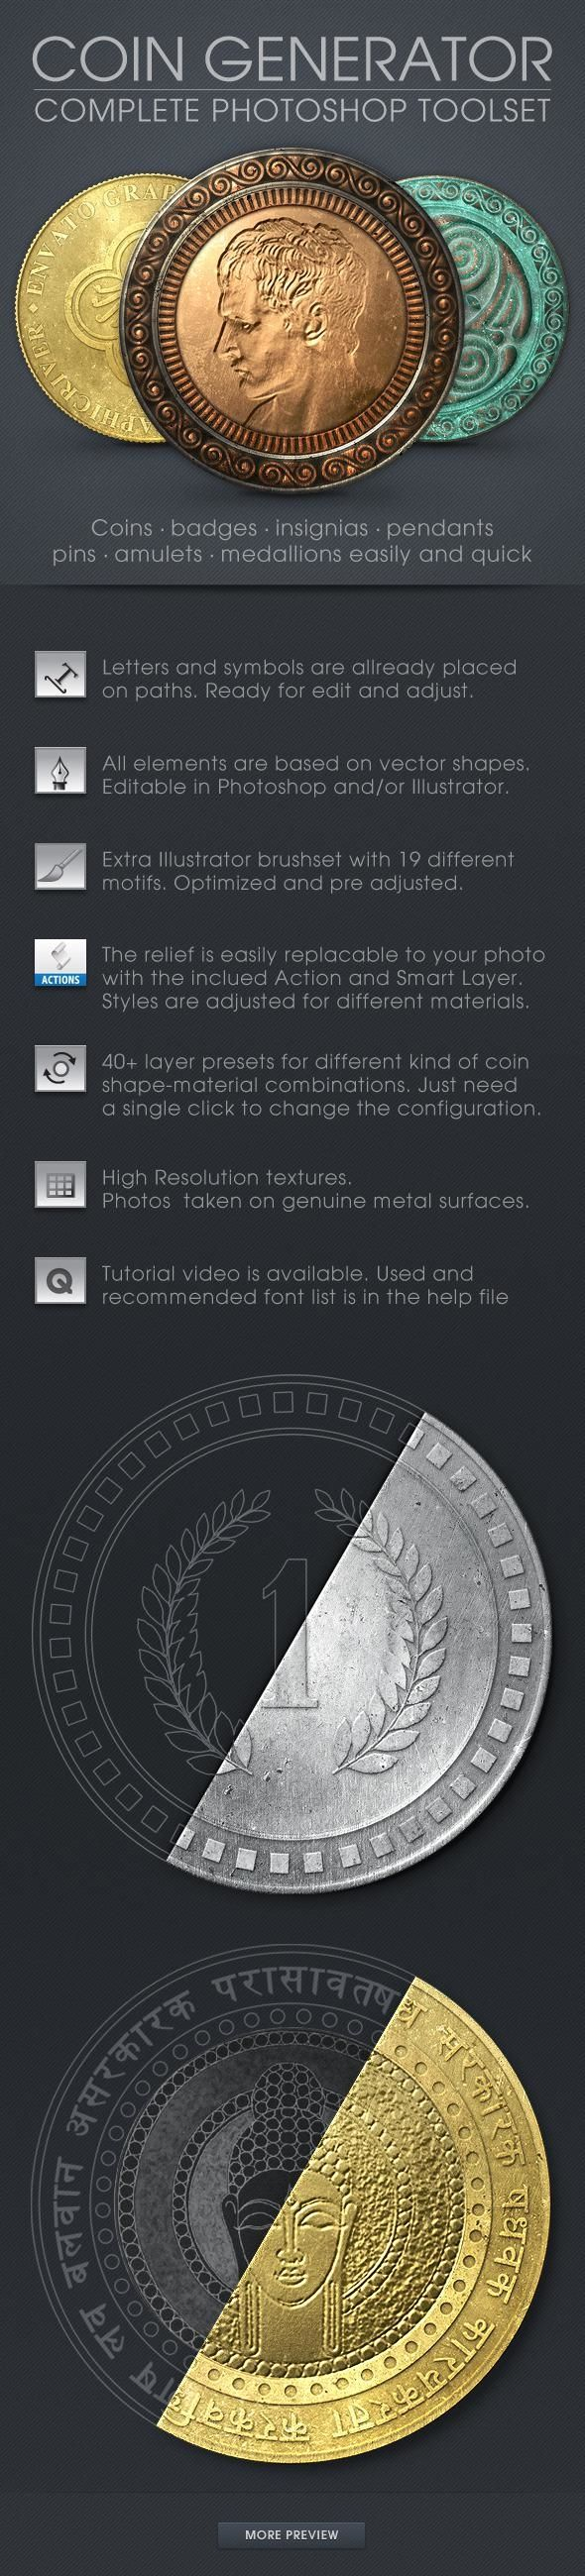 Coin Generator - GraphicRiver #photoshop #Actions #PhotoshopActions